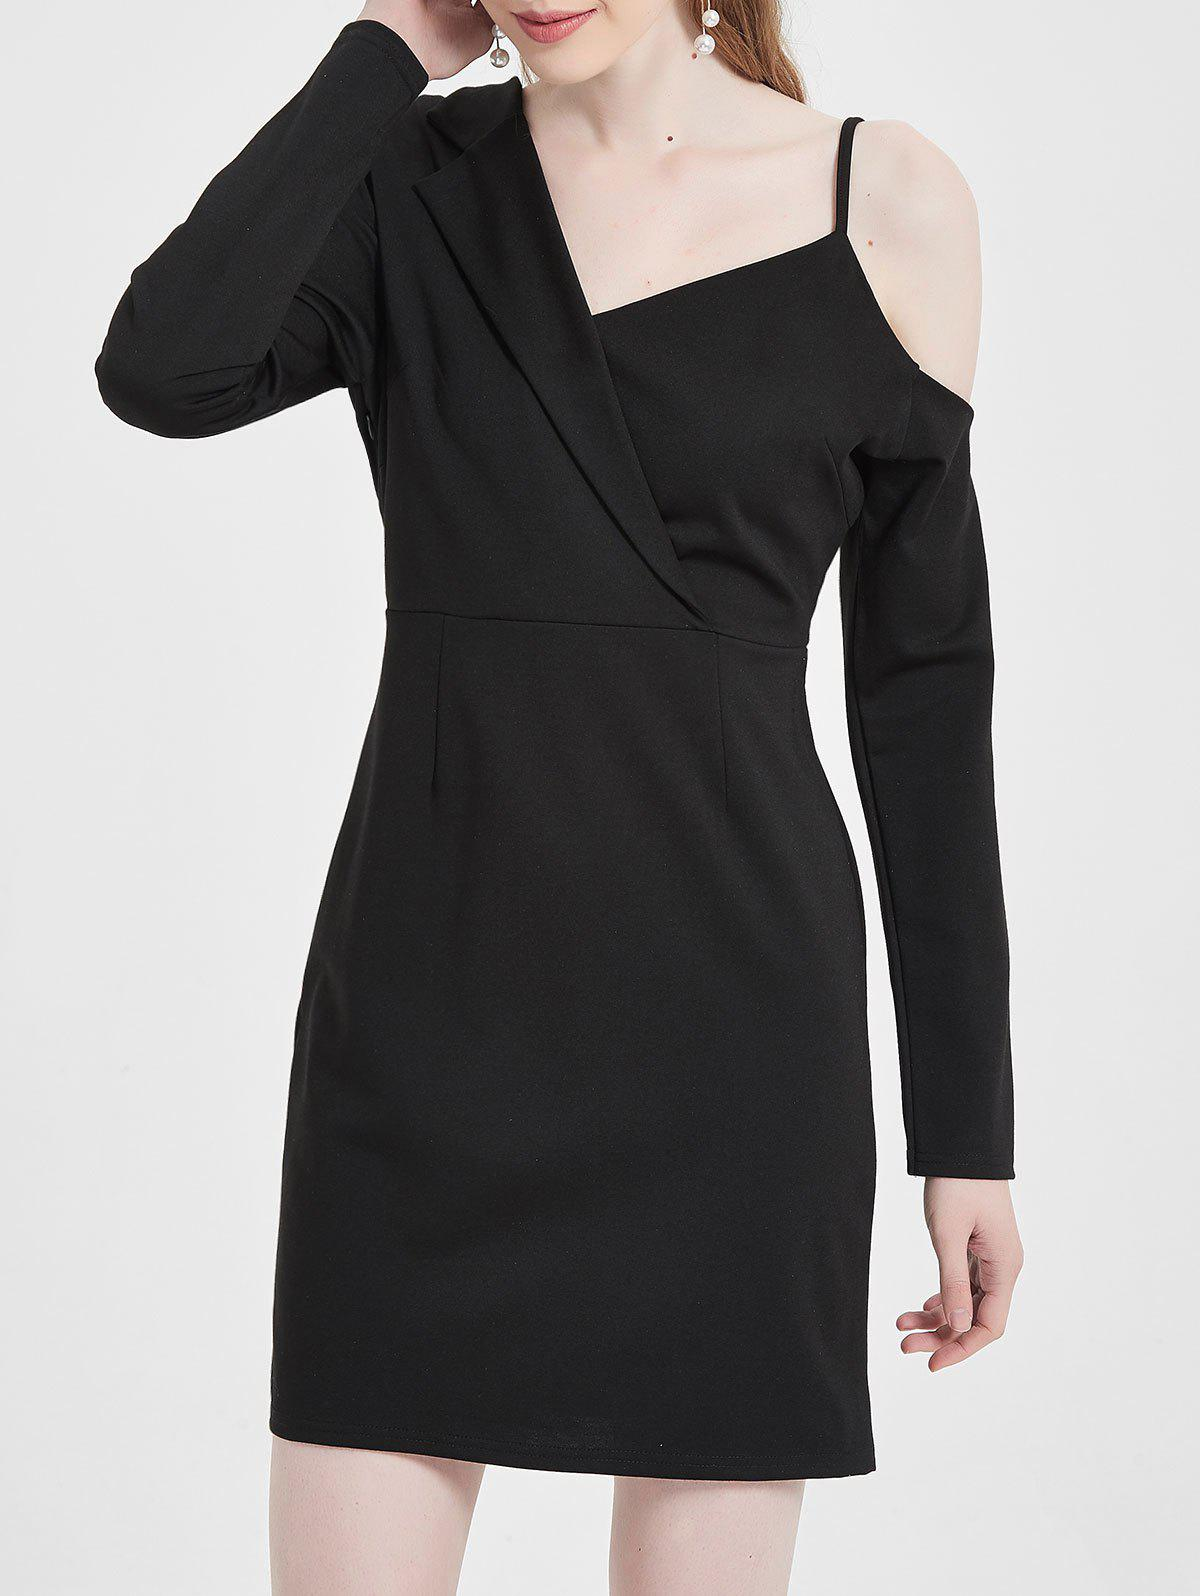 Skew Neck Bodycon Blazer Dress - BLACK M